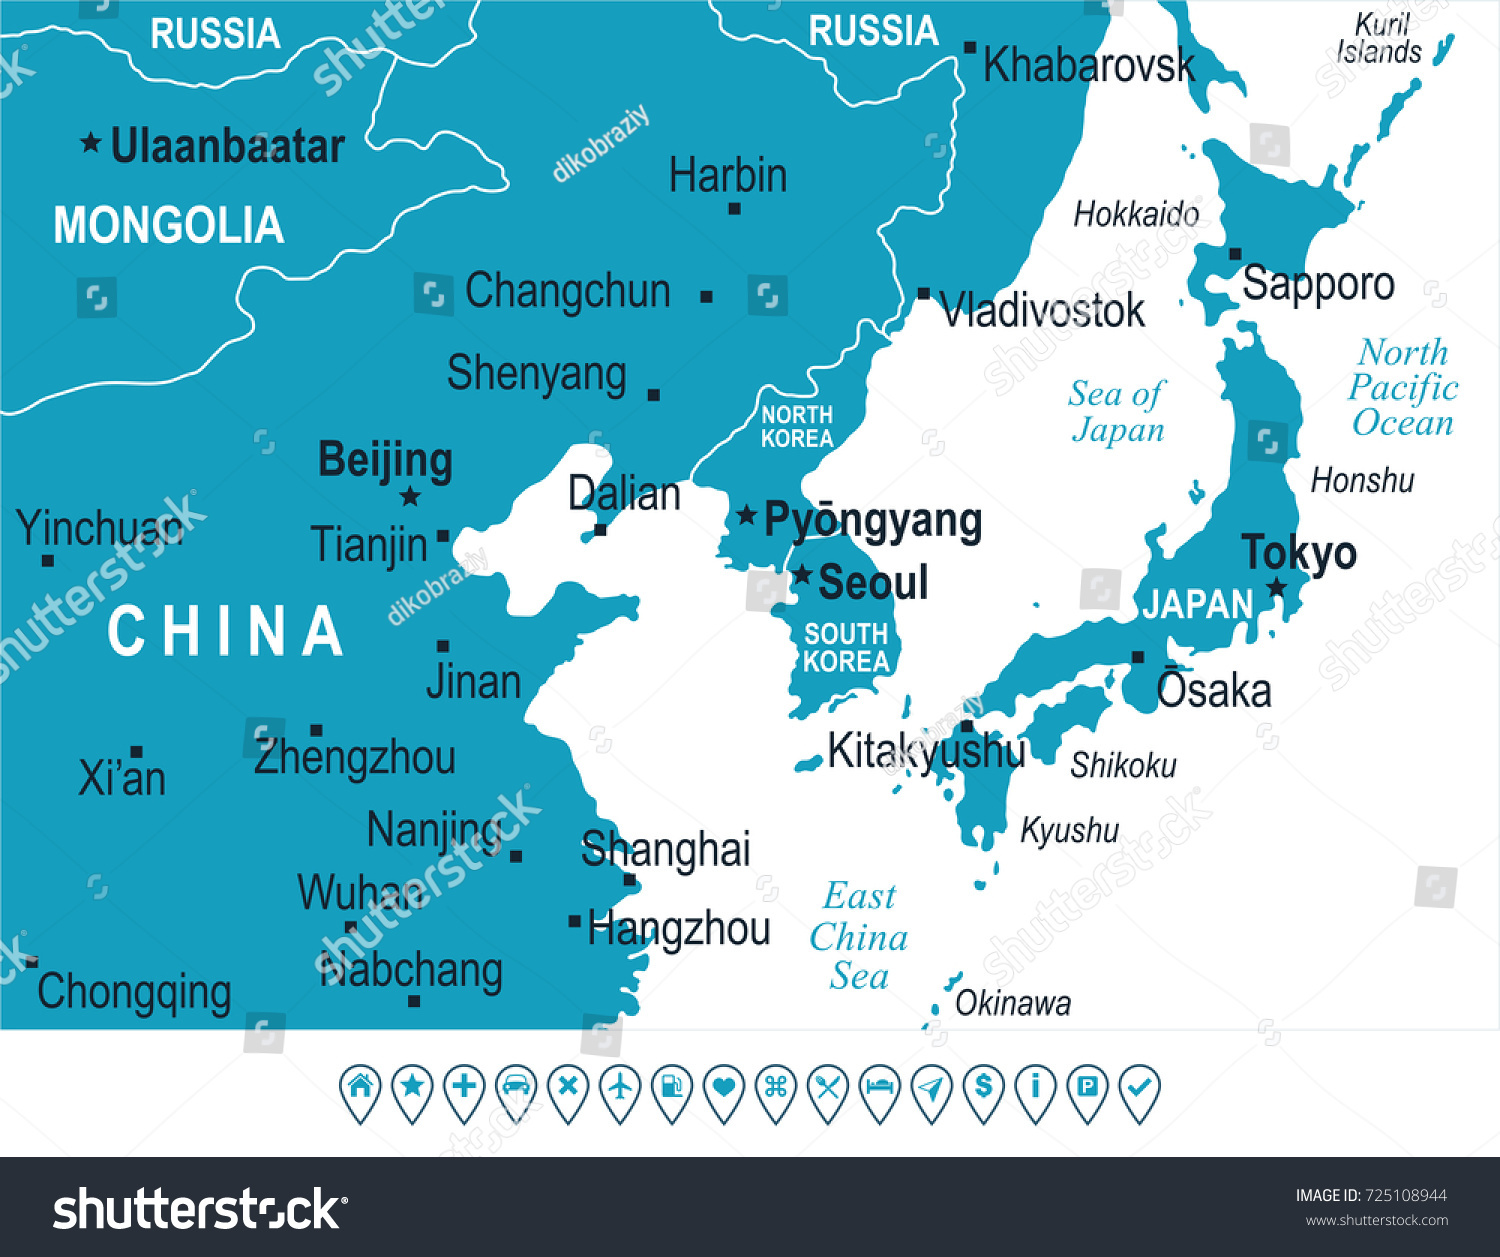 North Korea South Korea Japan China Russia Mongolia Map - Detailed ...